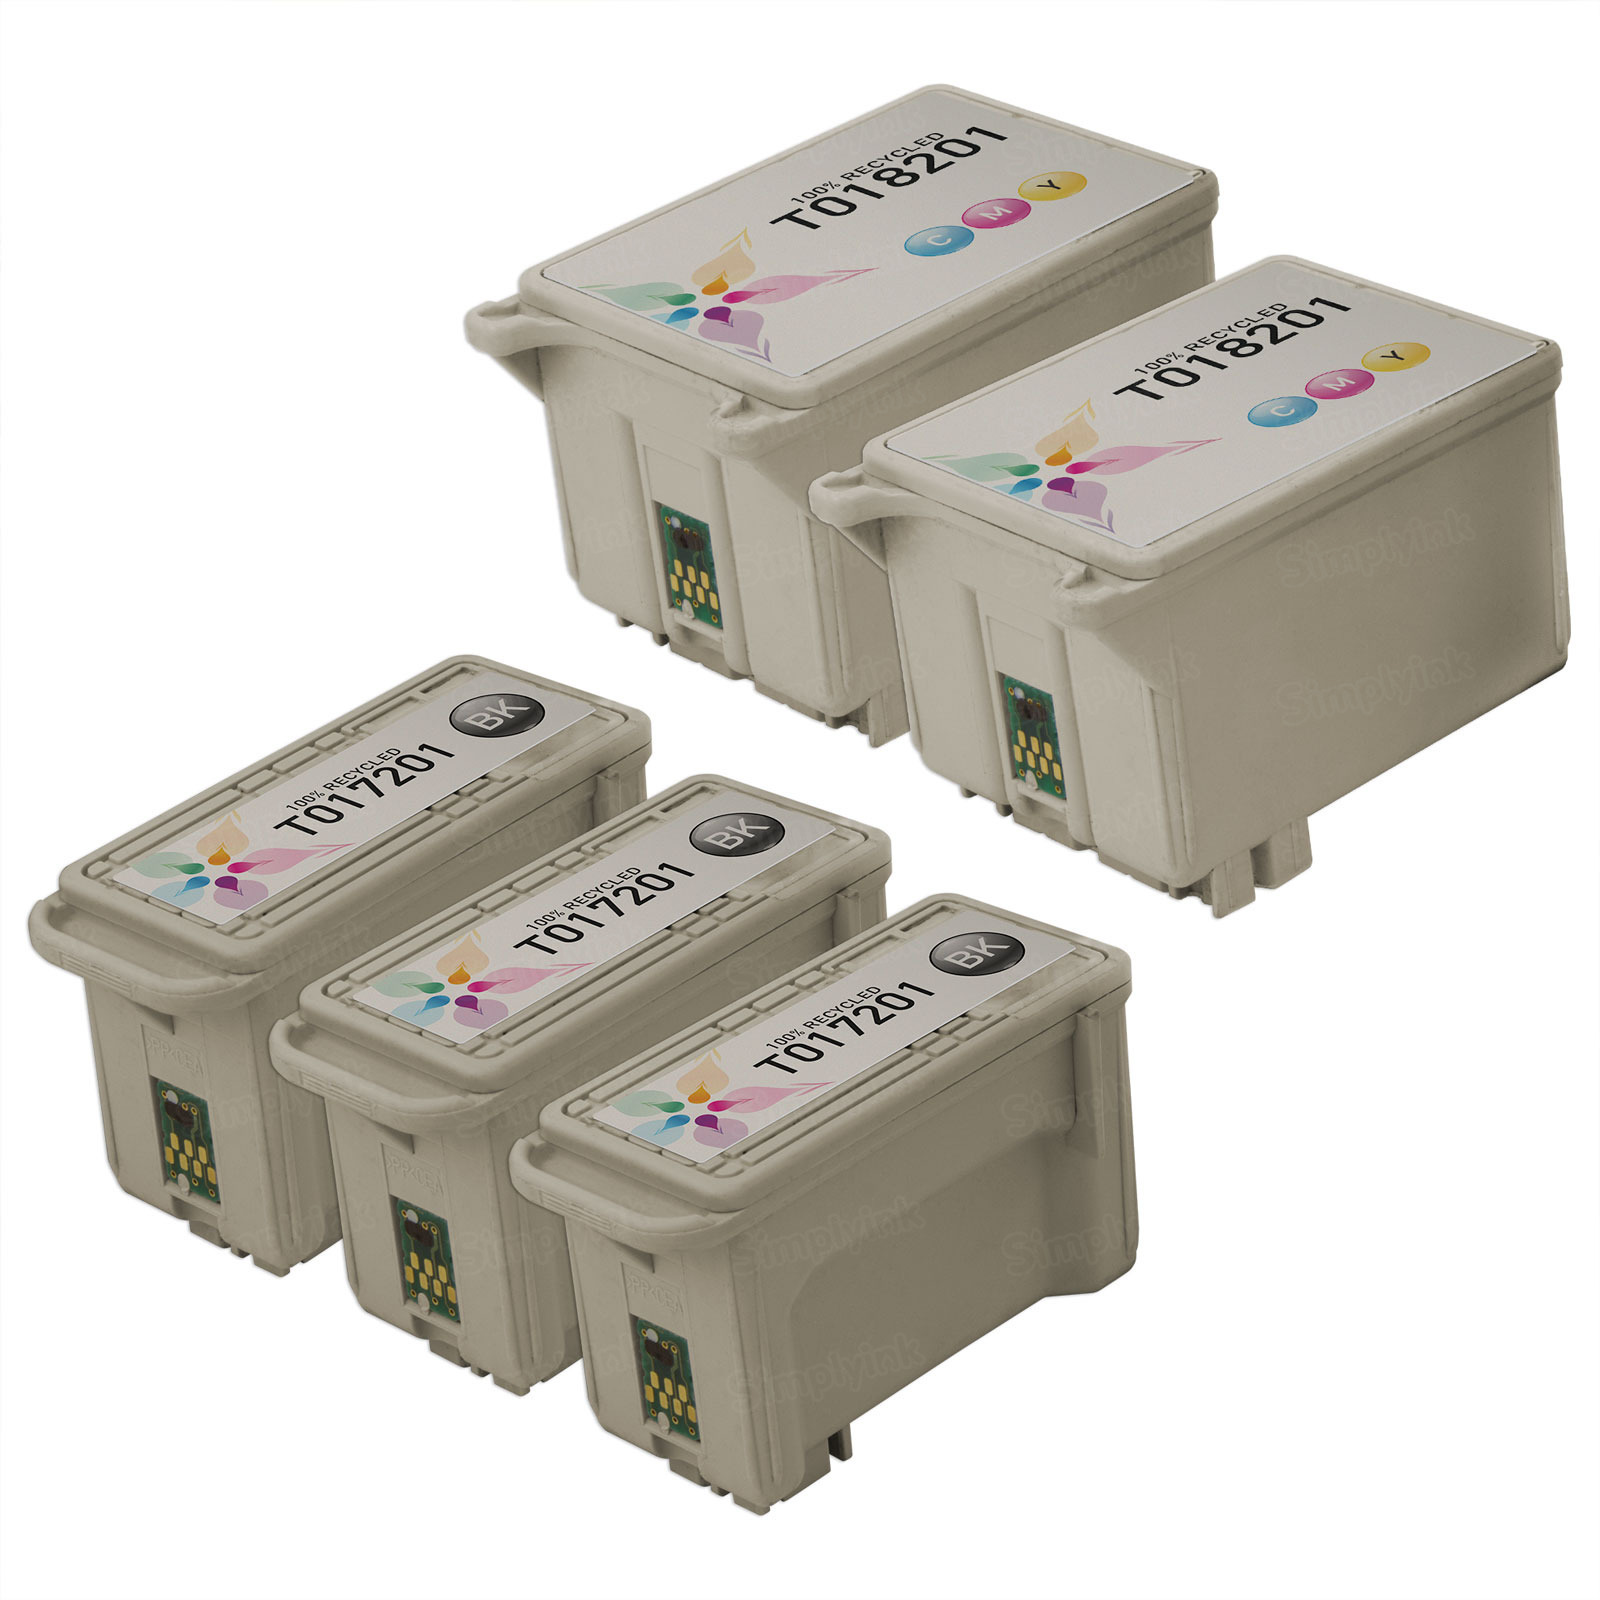 Inkjet Supplies for Epson Printers - Remanufactured Bulk Set of 5 Ink Cartridges 3 Black Epson T017201 (T017) and 2 Color Epson T018201 (T018)